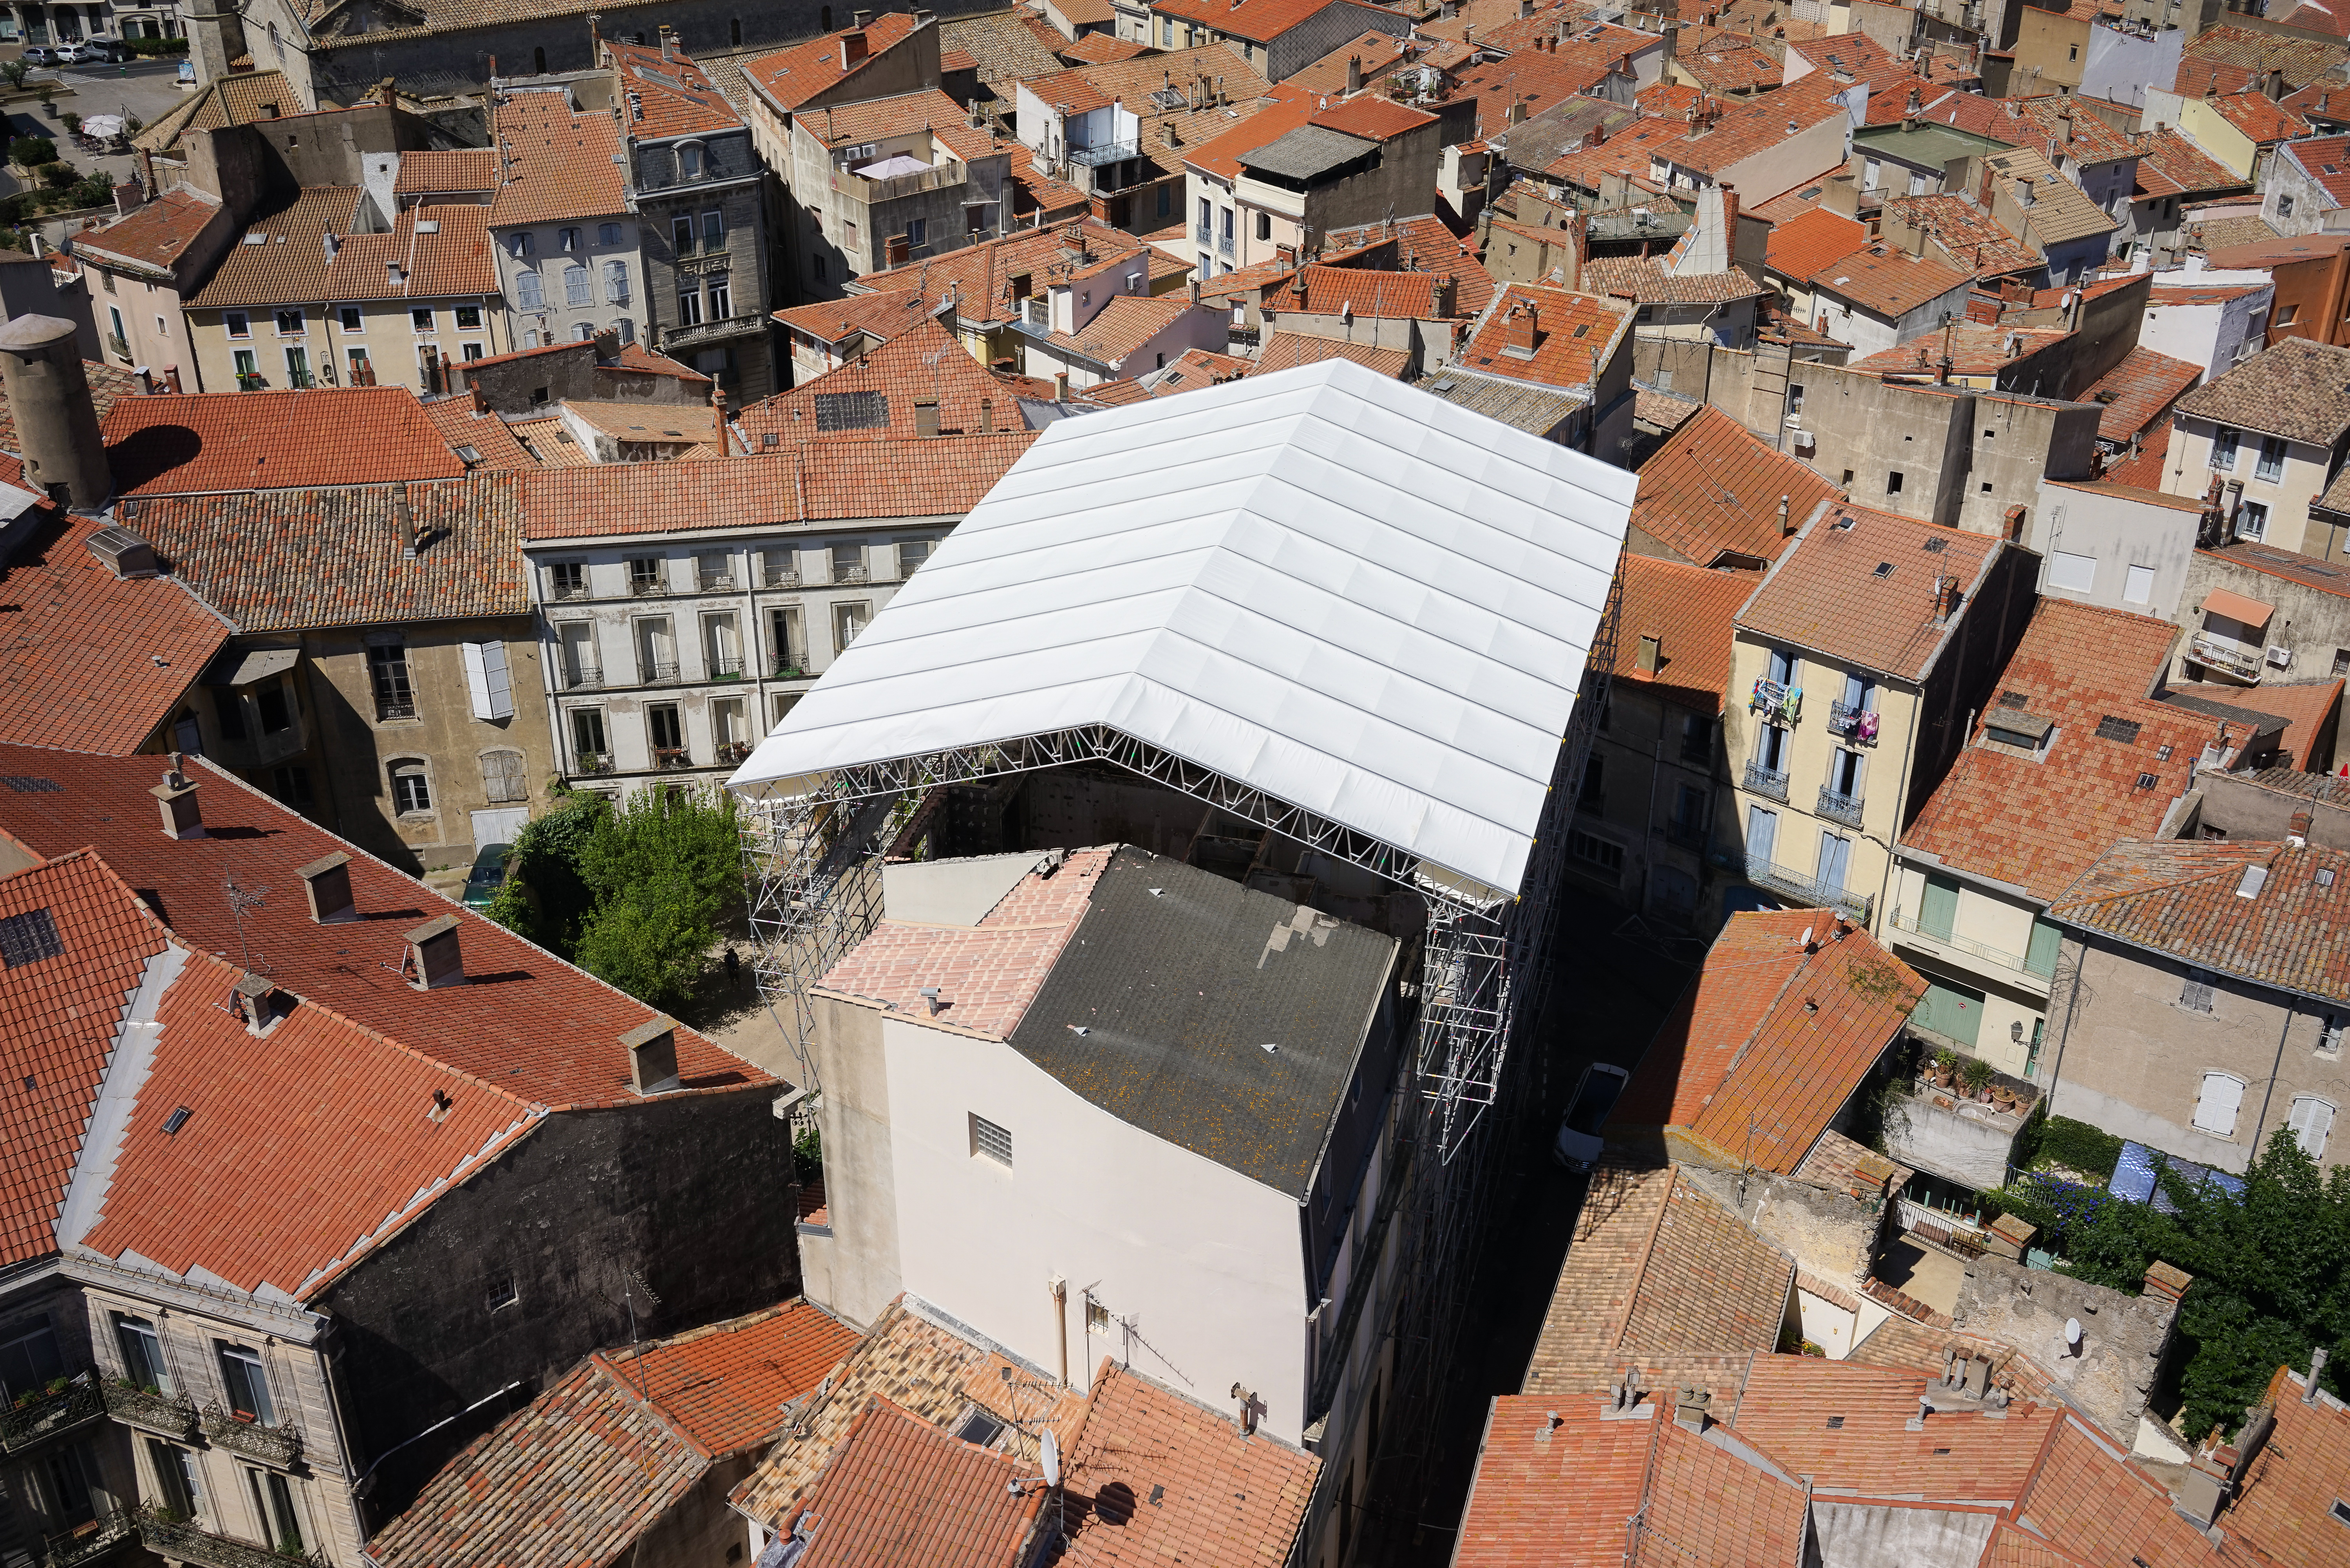 Temporary roof covering